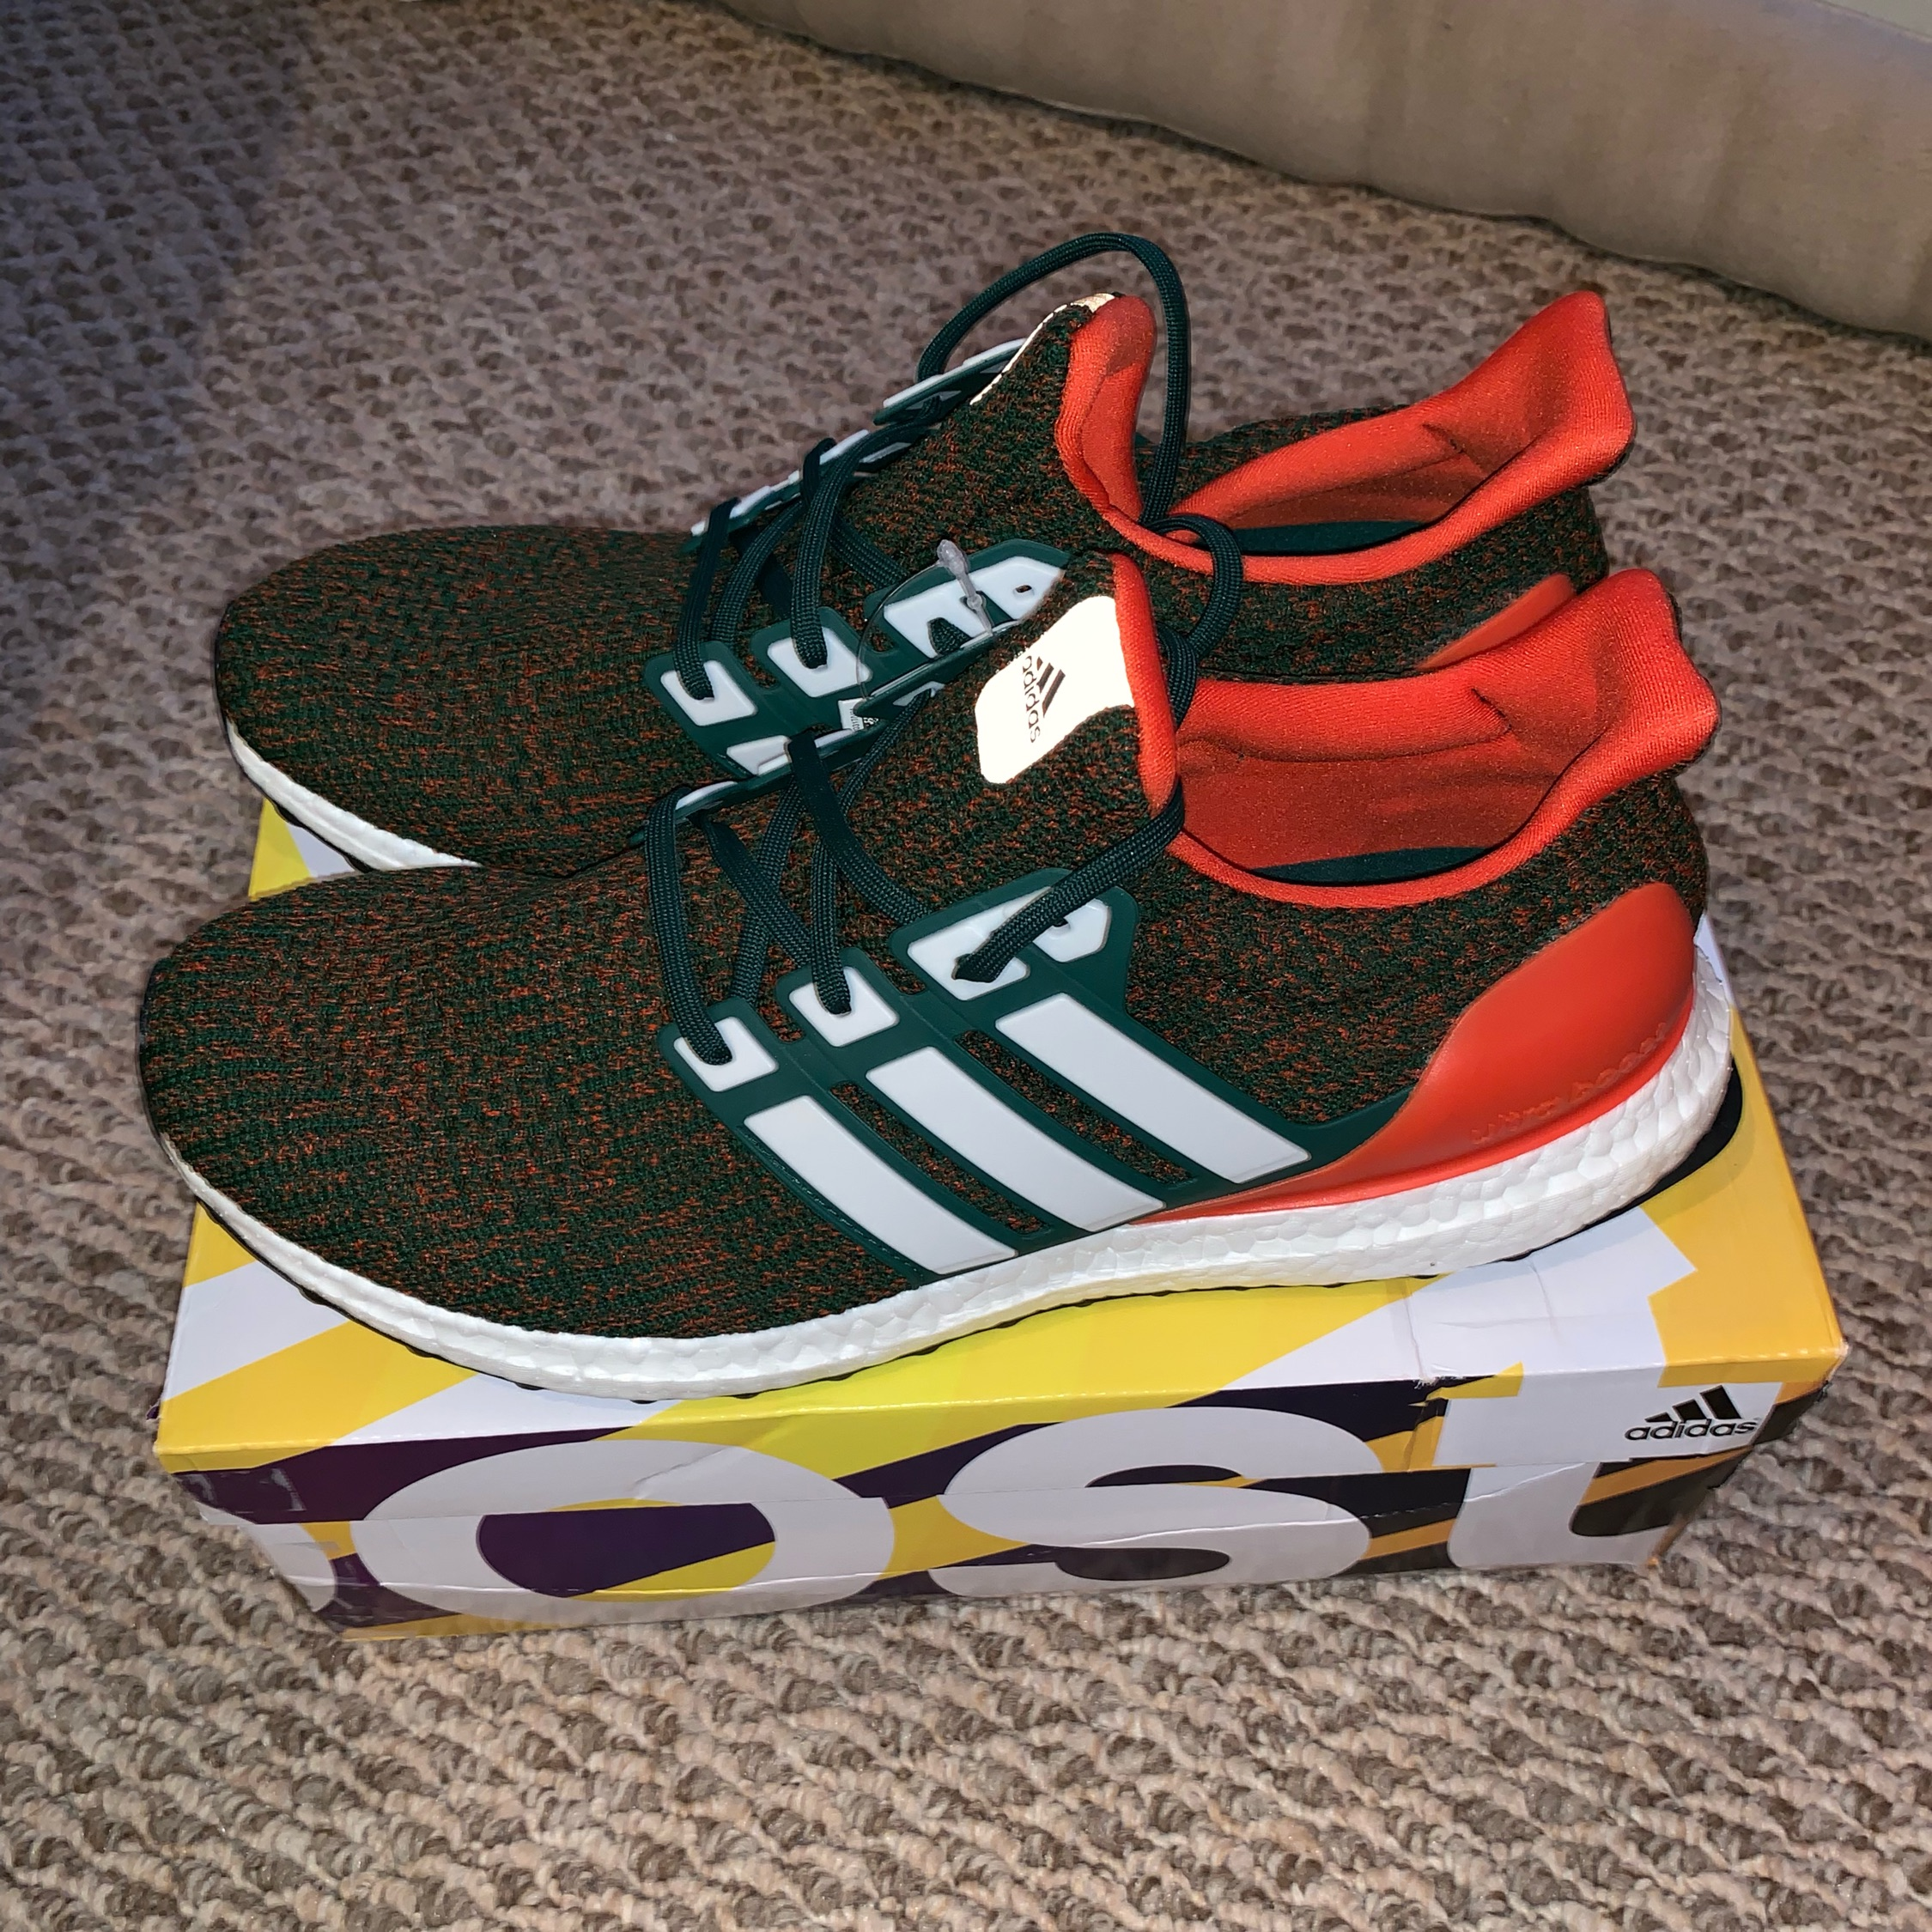 new style 44d5c 44677 Adidas Ultraboost 4.0 Miami Hurricanes